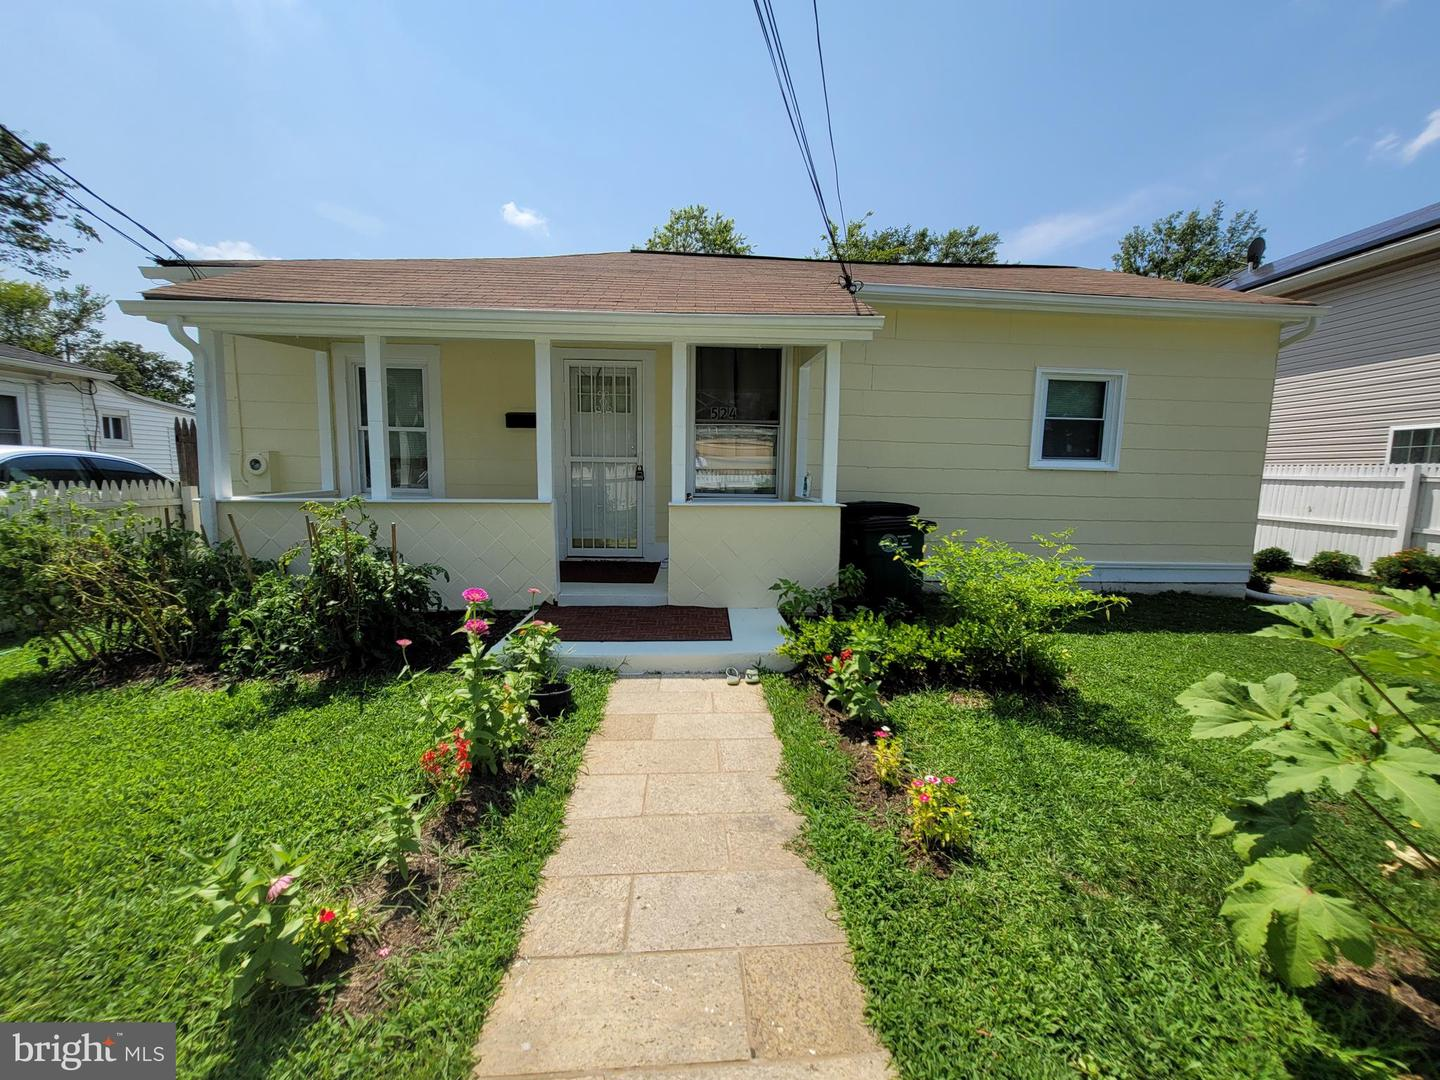 524 69th Street Capitol Heights, MD 20743